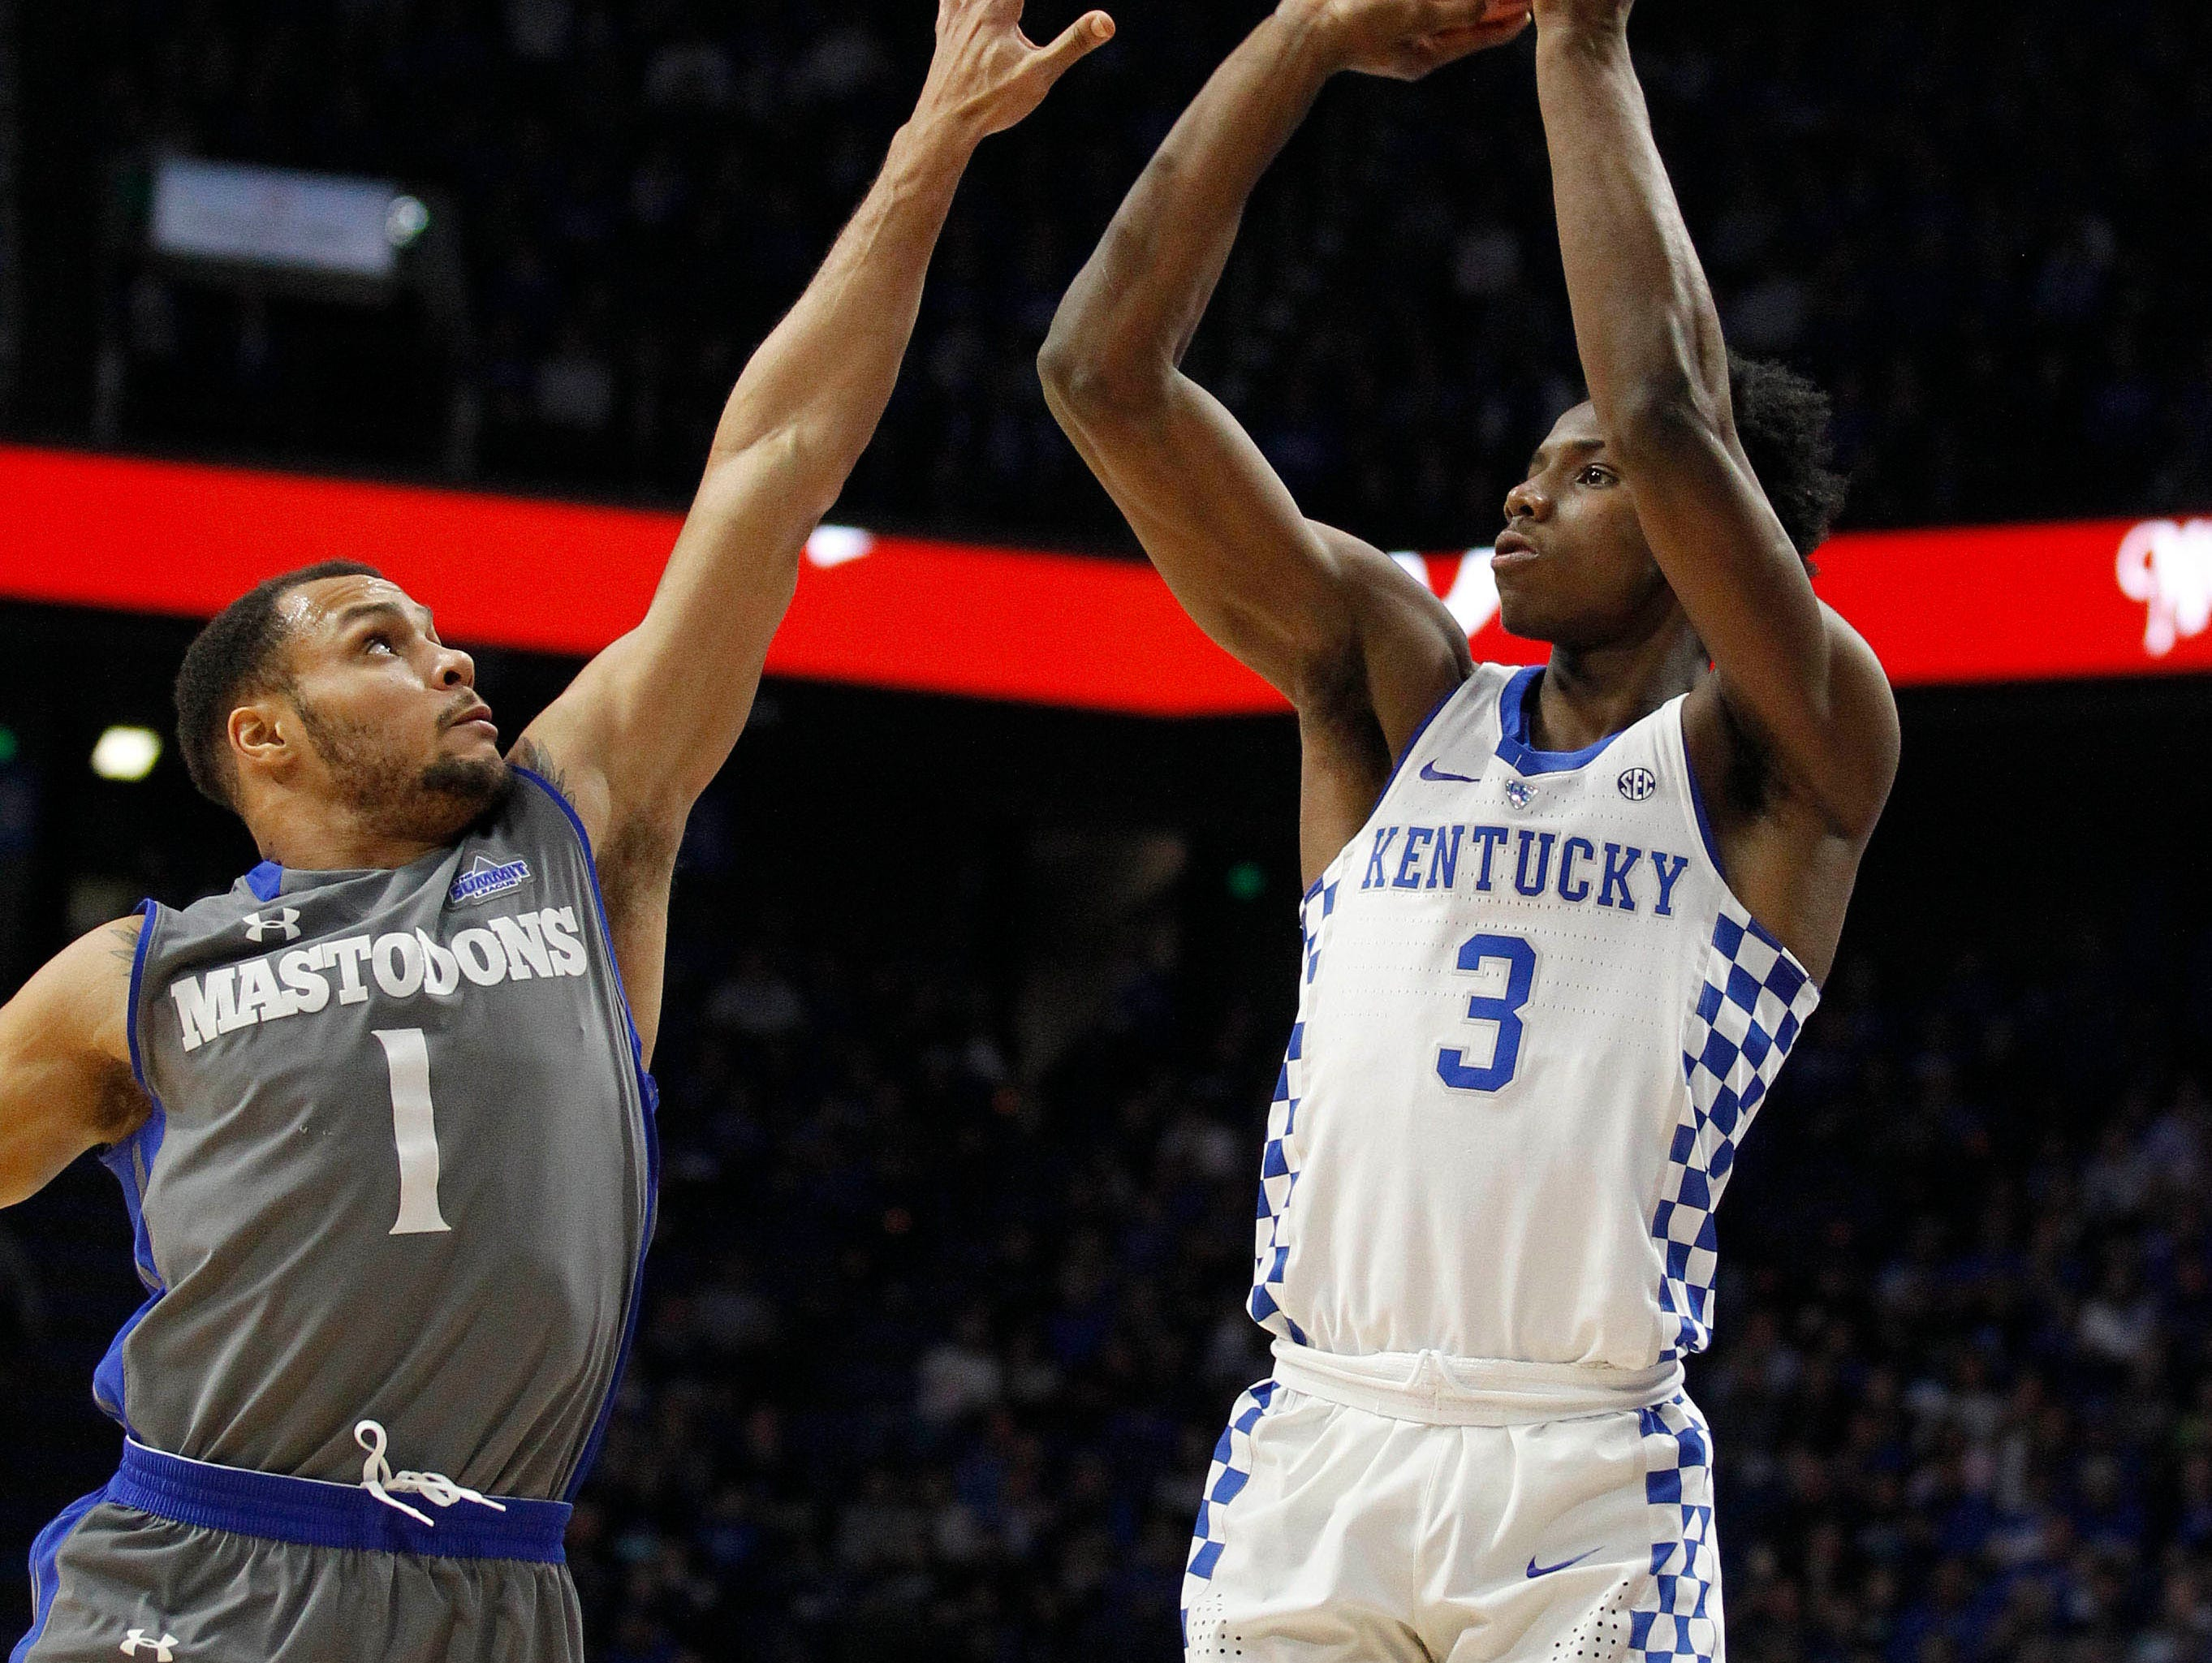 How To Watch Uk Basketball Play Etsu Game Time Tv: How To Watch UK Basketball Play UIC: Game Time, TV Channel